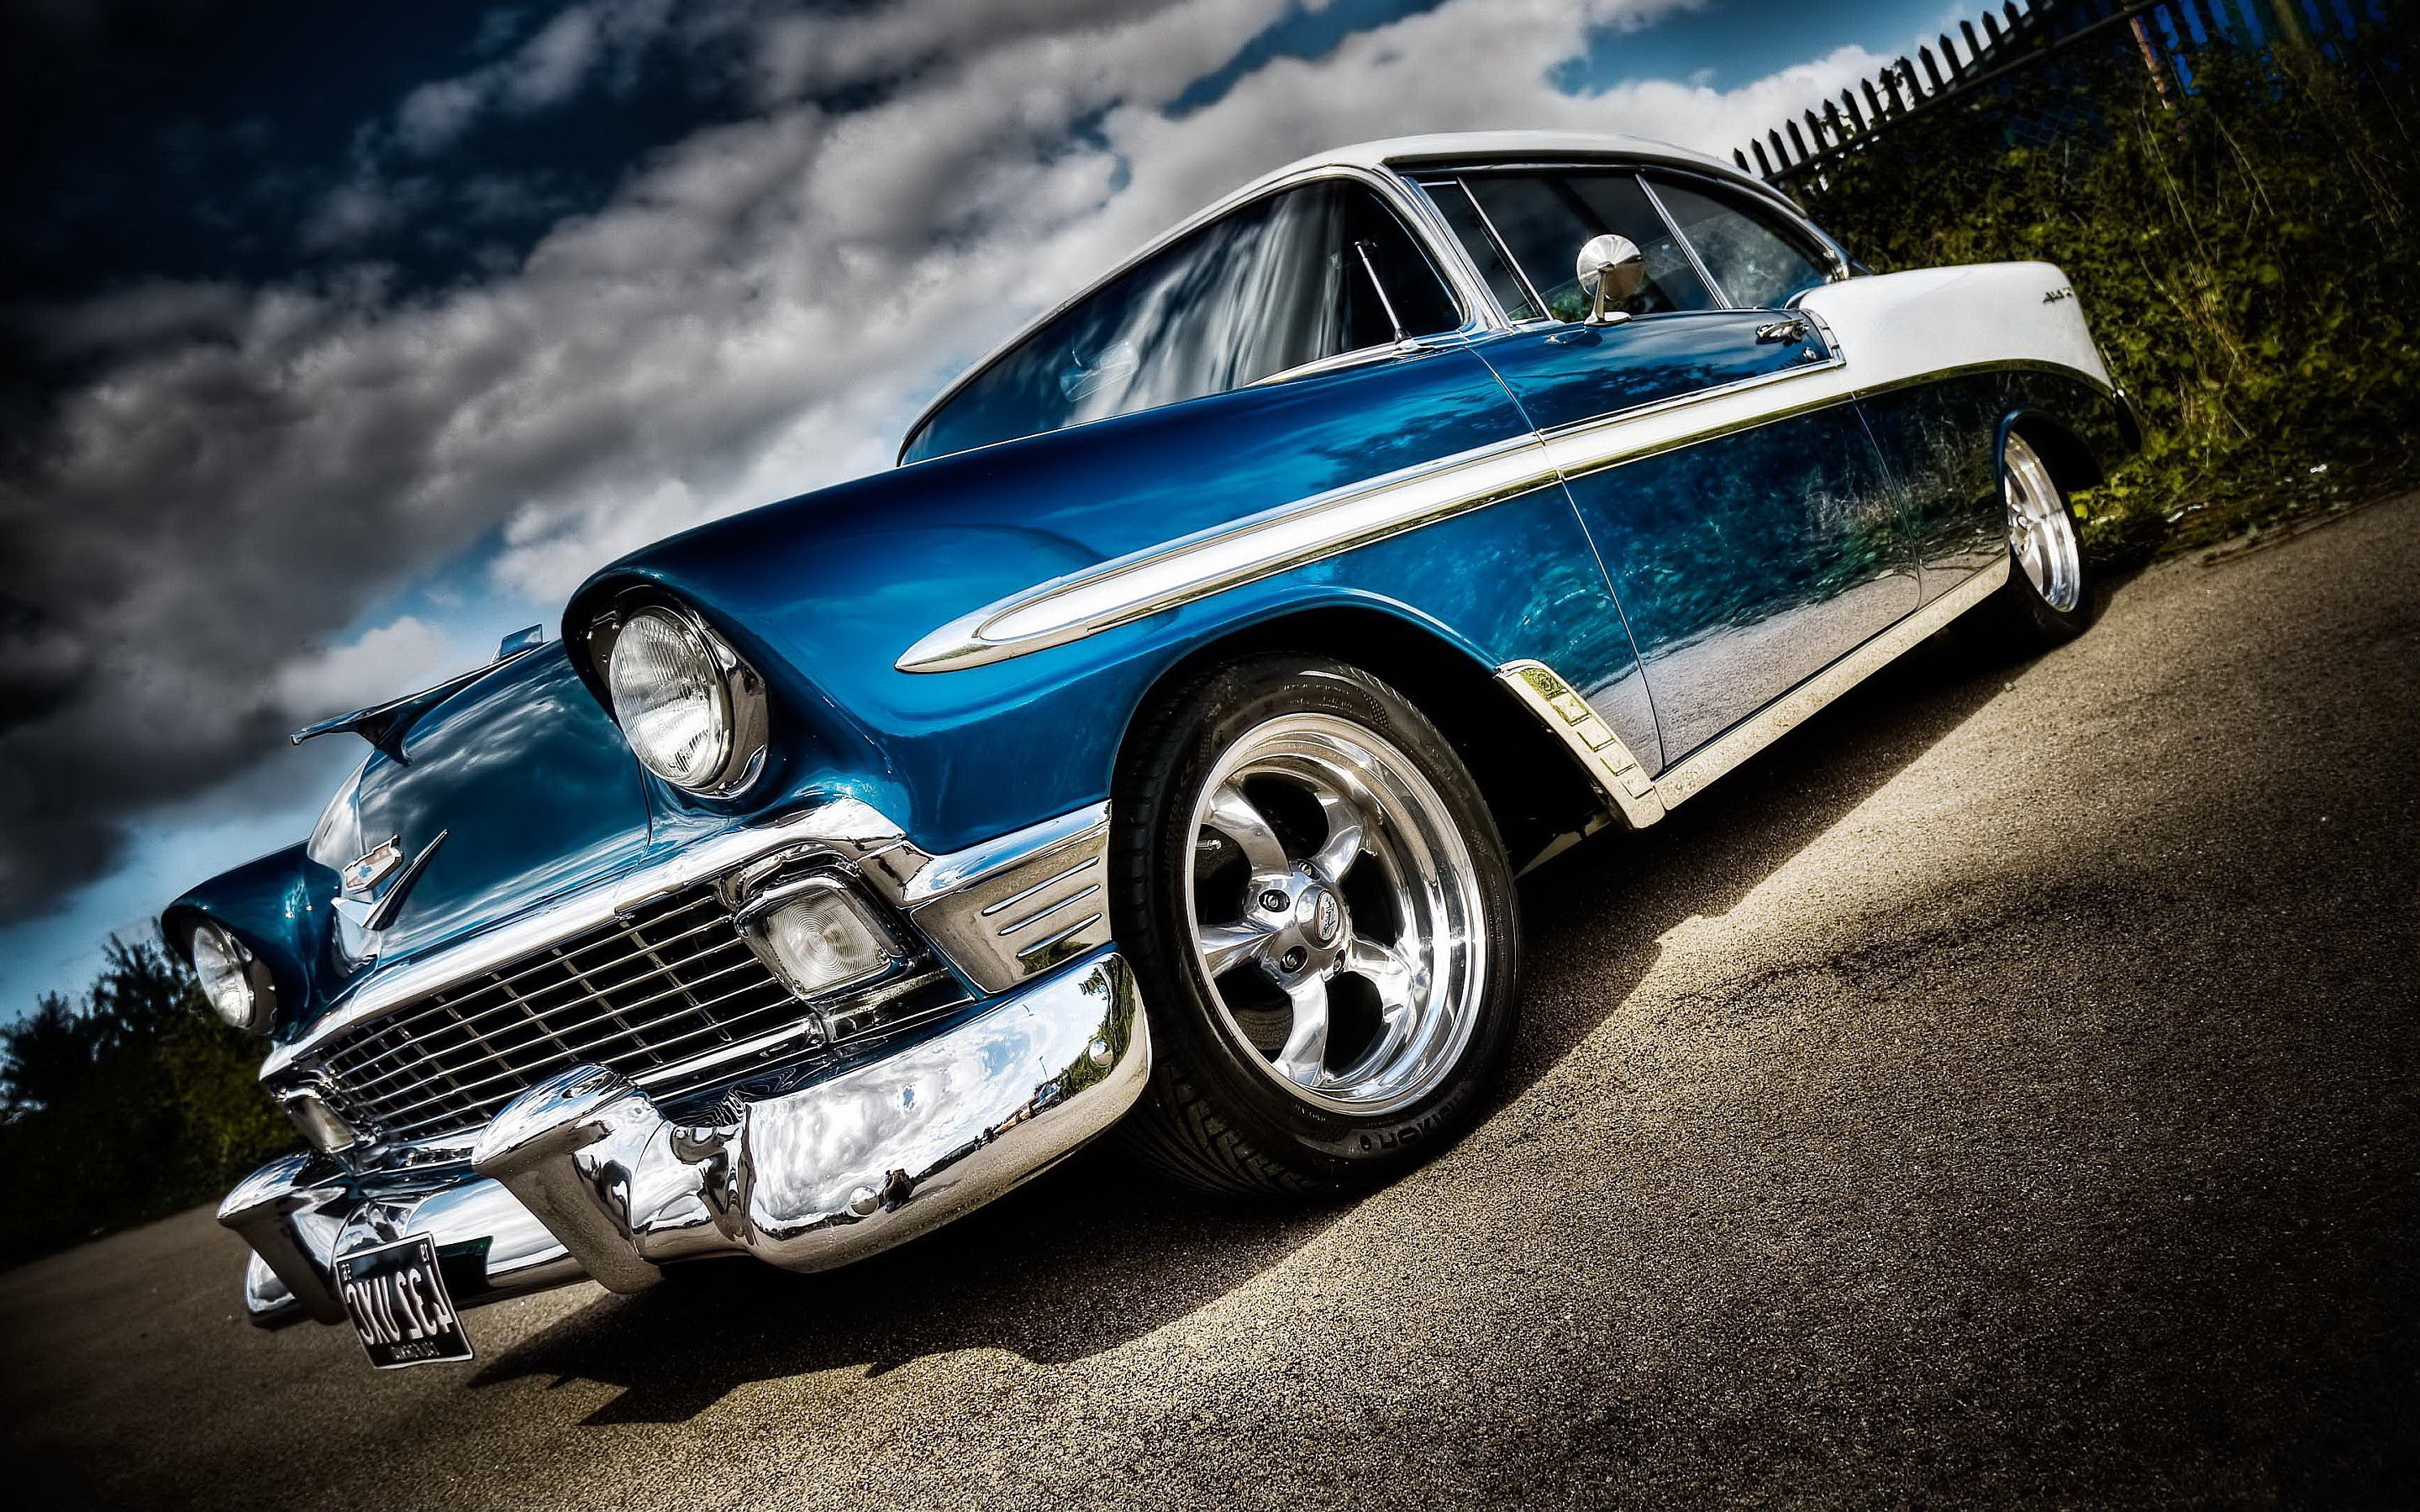 2880x1800 Old Car Wallpapers Hd Hd Wallpapers · Download · Classic ...